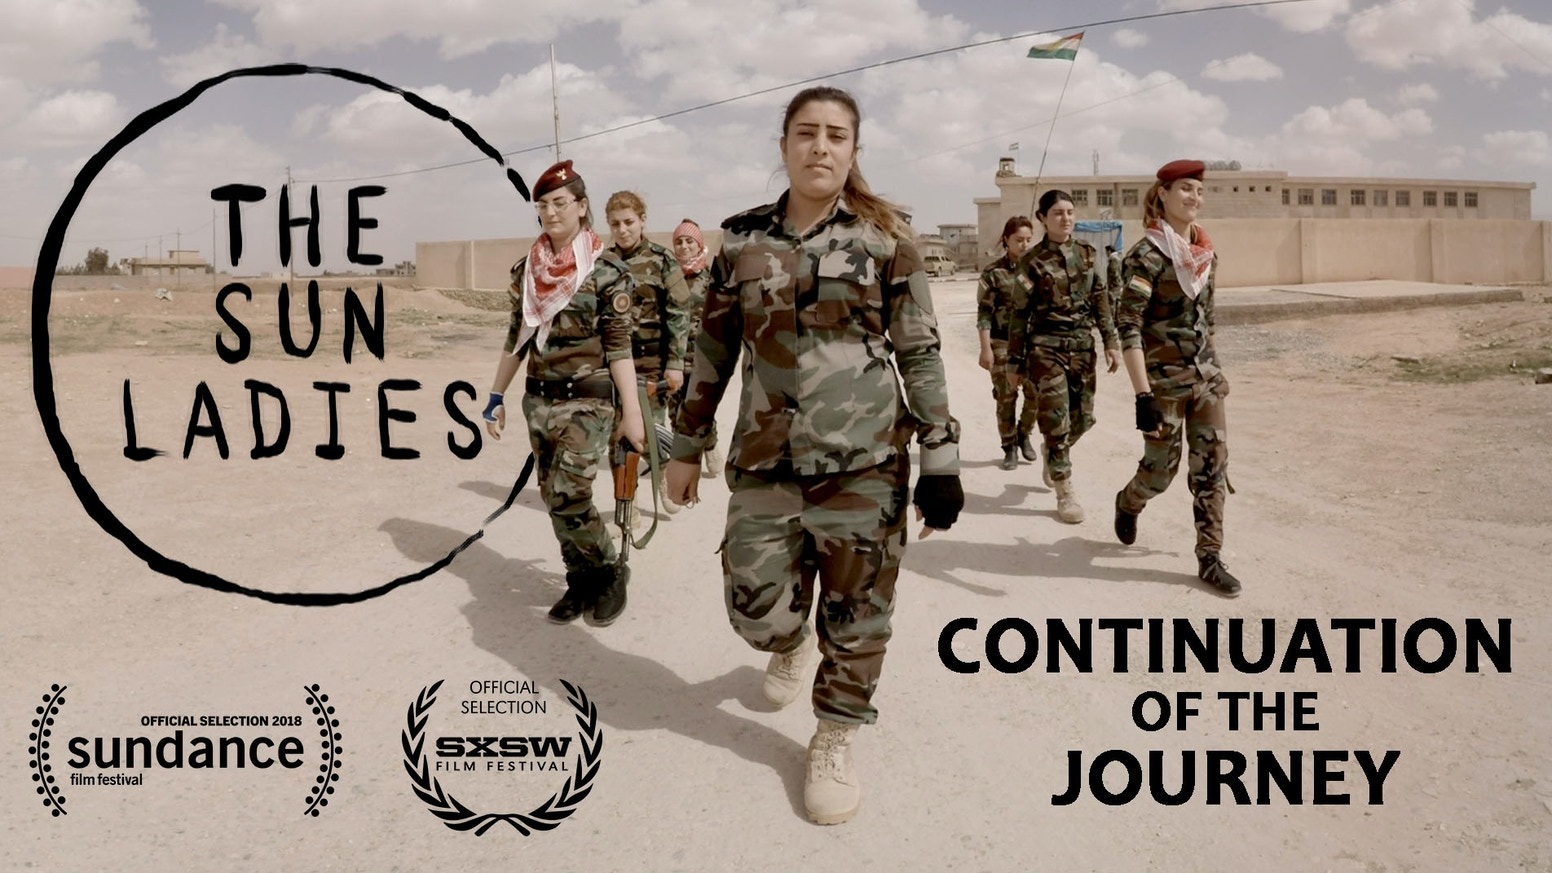 """The Sun Ladies"" is a VR documentary about the yazidi women who escaped sex slavery and joined the army to fight against ISIS in Iraq."